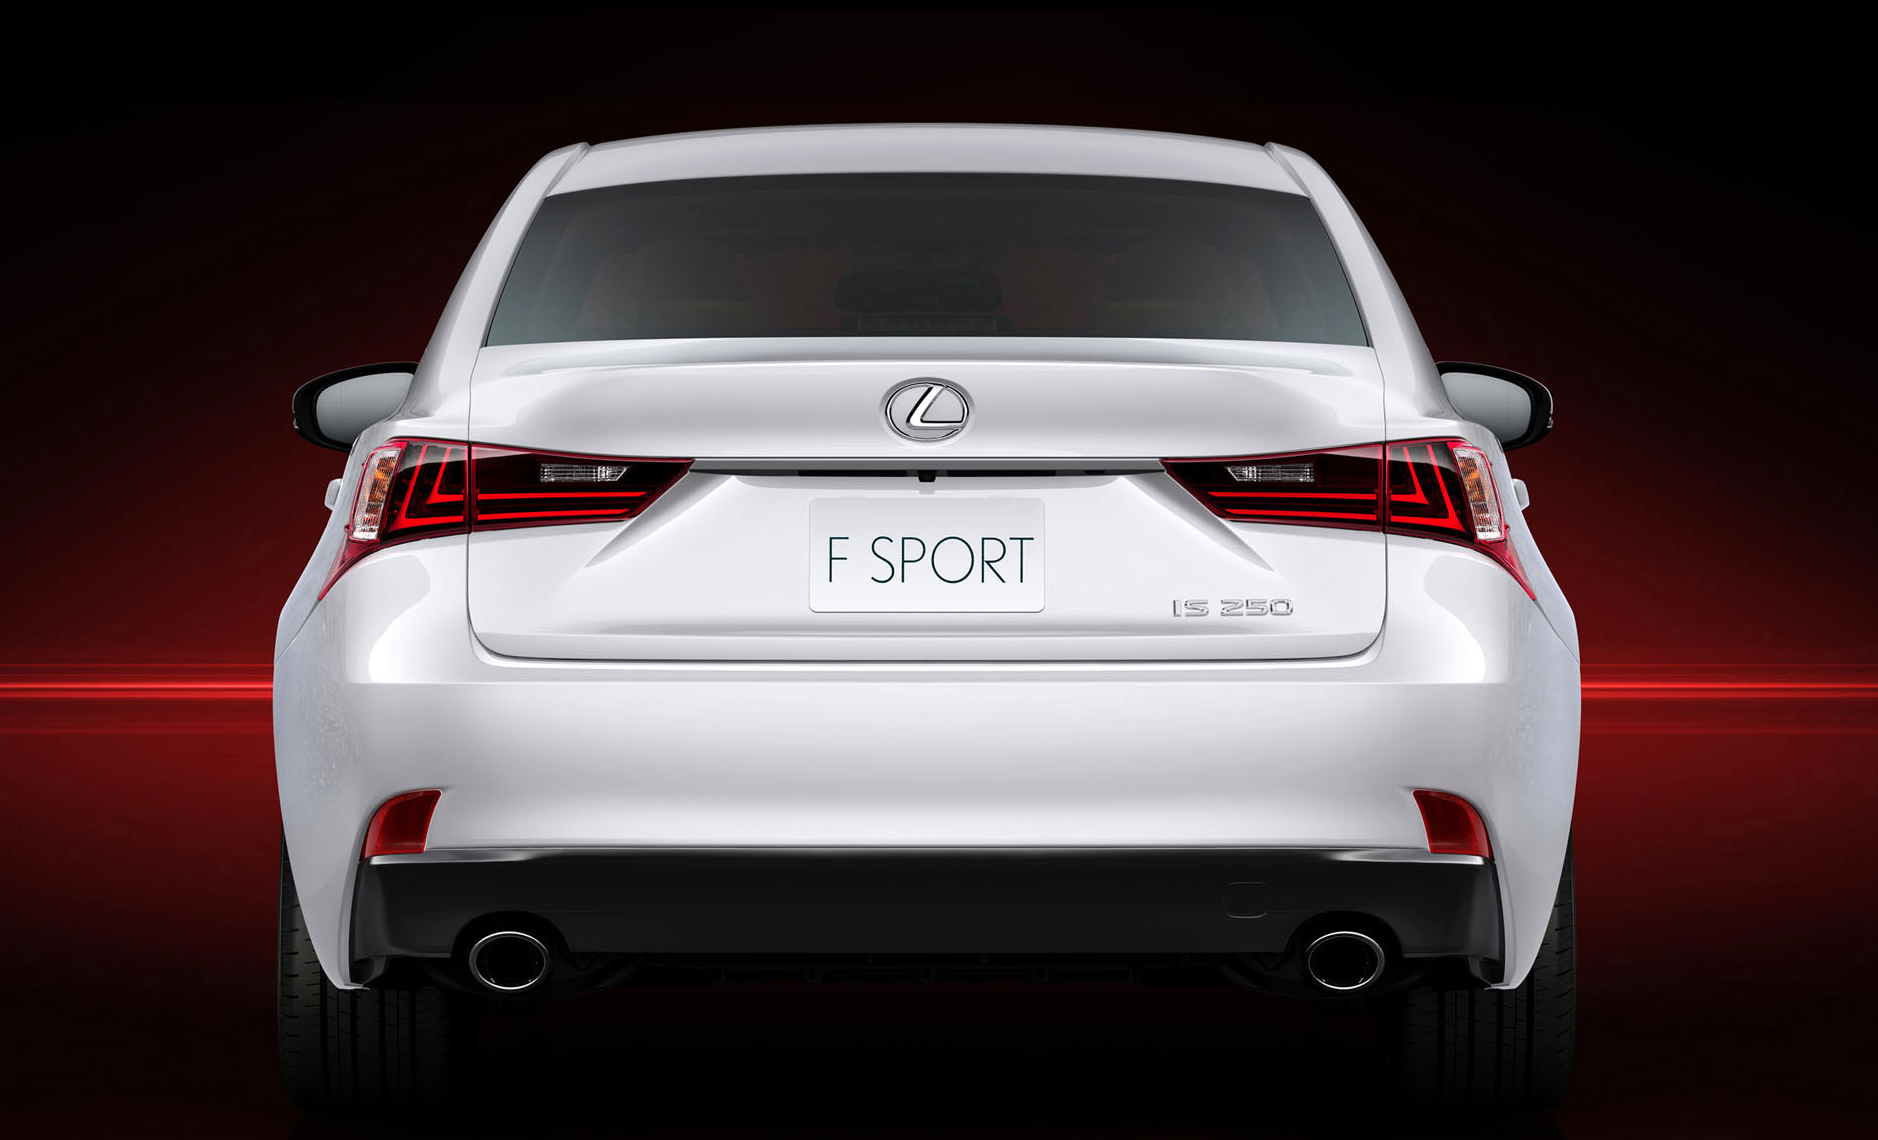 New 2014 Lexus IS officially revealed – IS 250 IS 350 F Sport